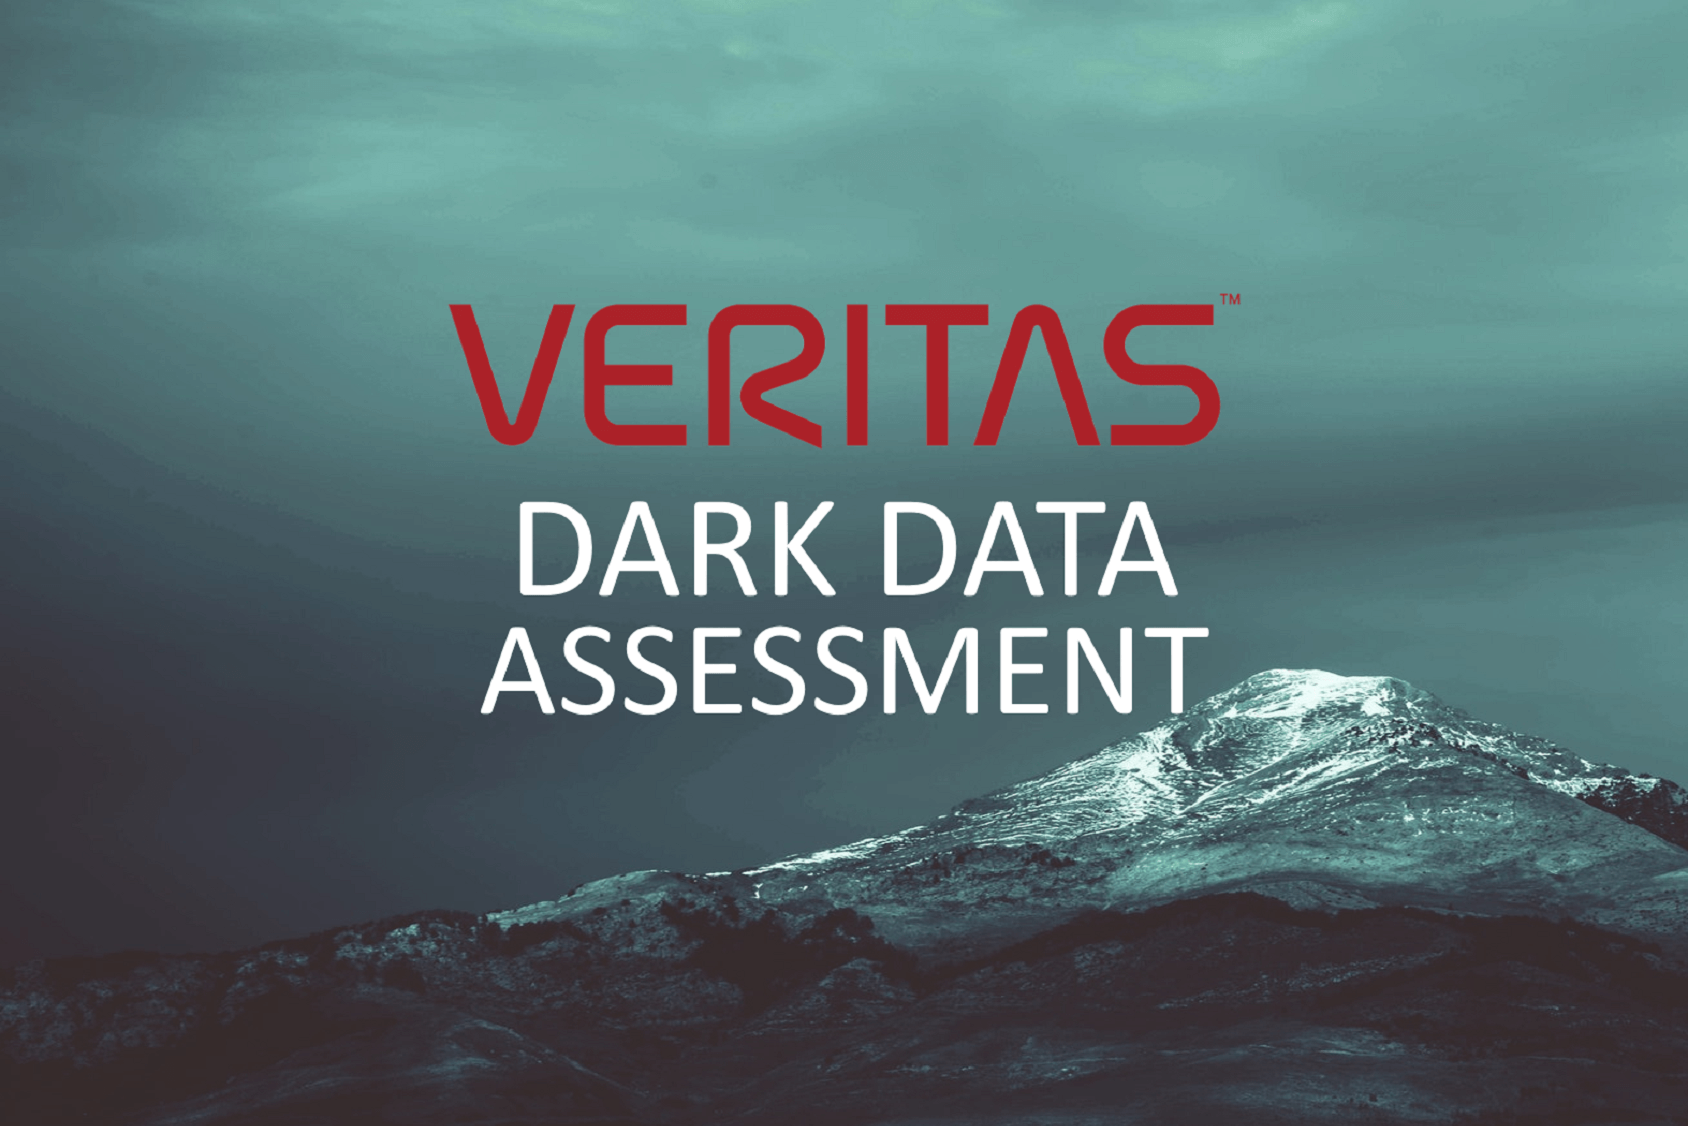 Dark data Assessment